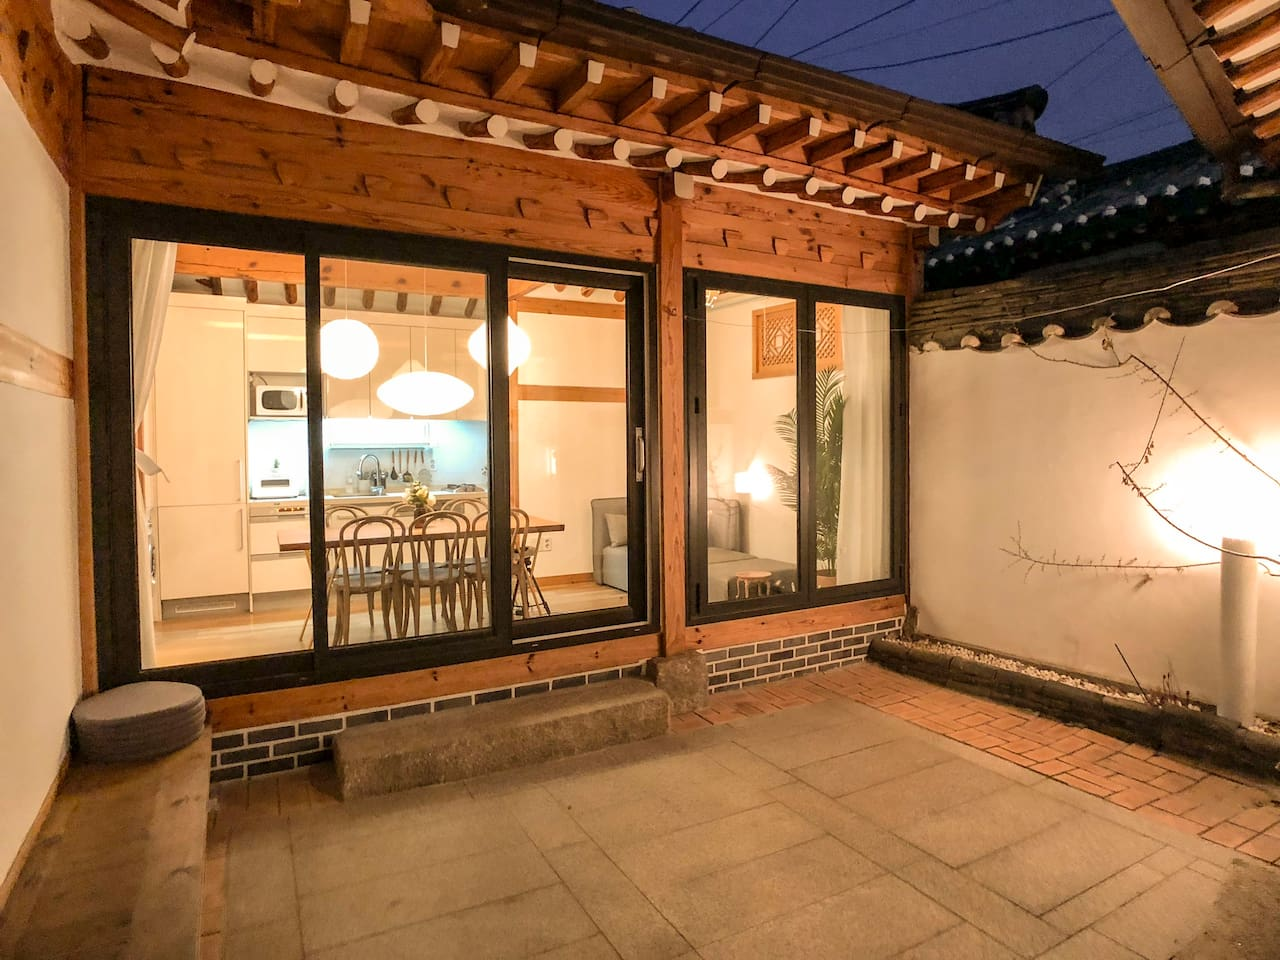 Renovated Hanok in Feb - this is the large living room with an attached bedroom#1/bathroom#1